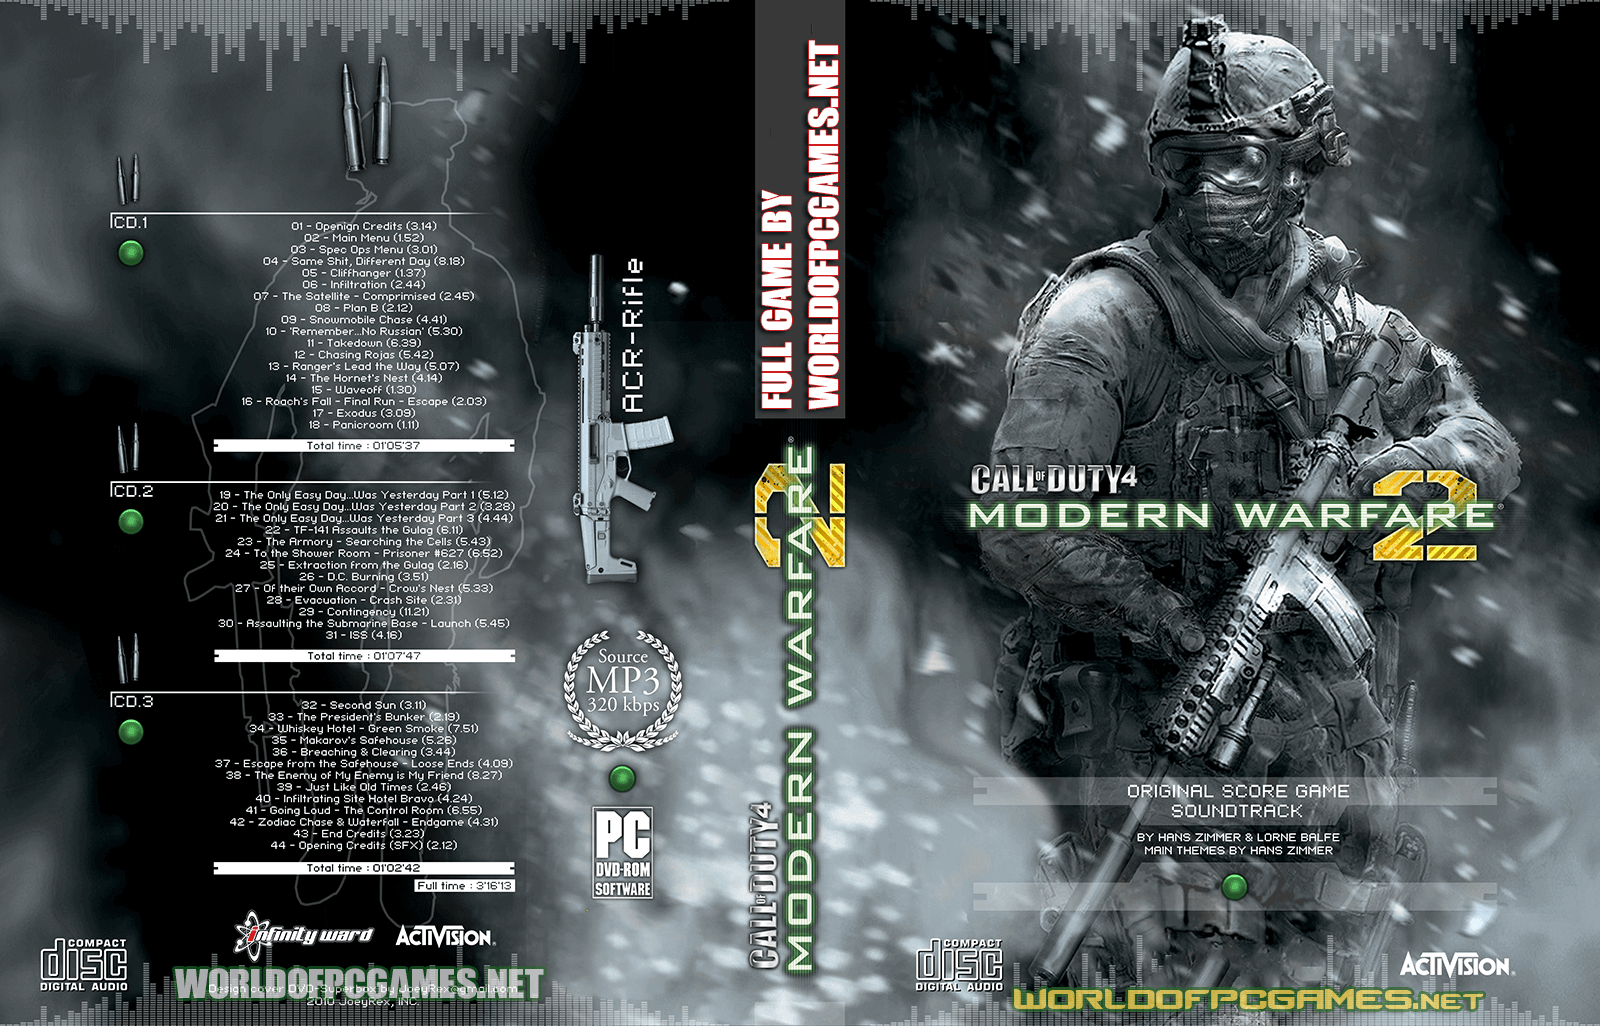 Pc game ita call of duty modern warfare 2 casino sanremo orari apertura